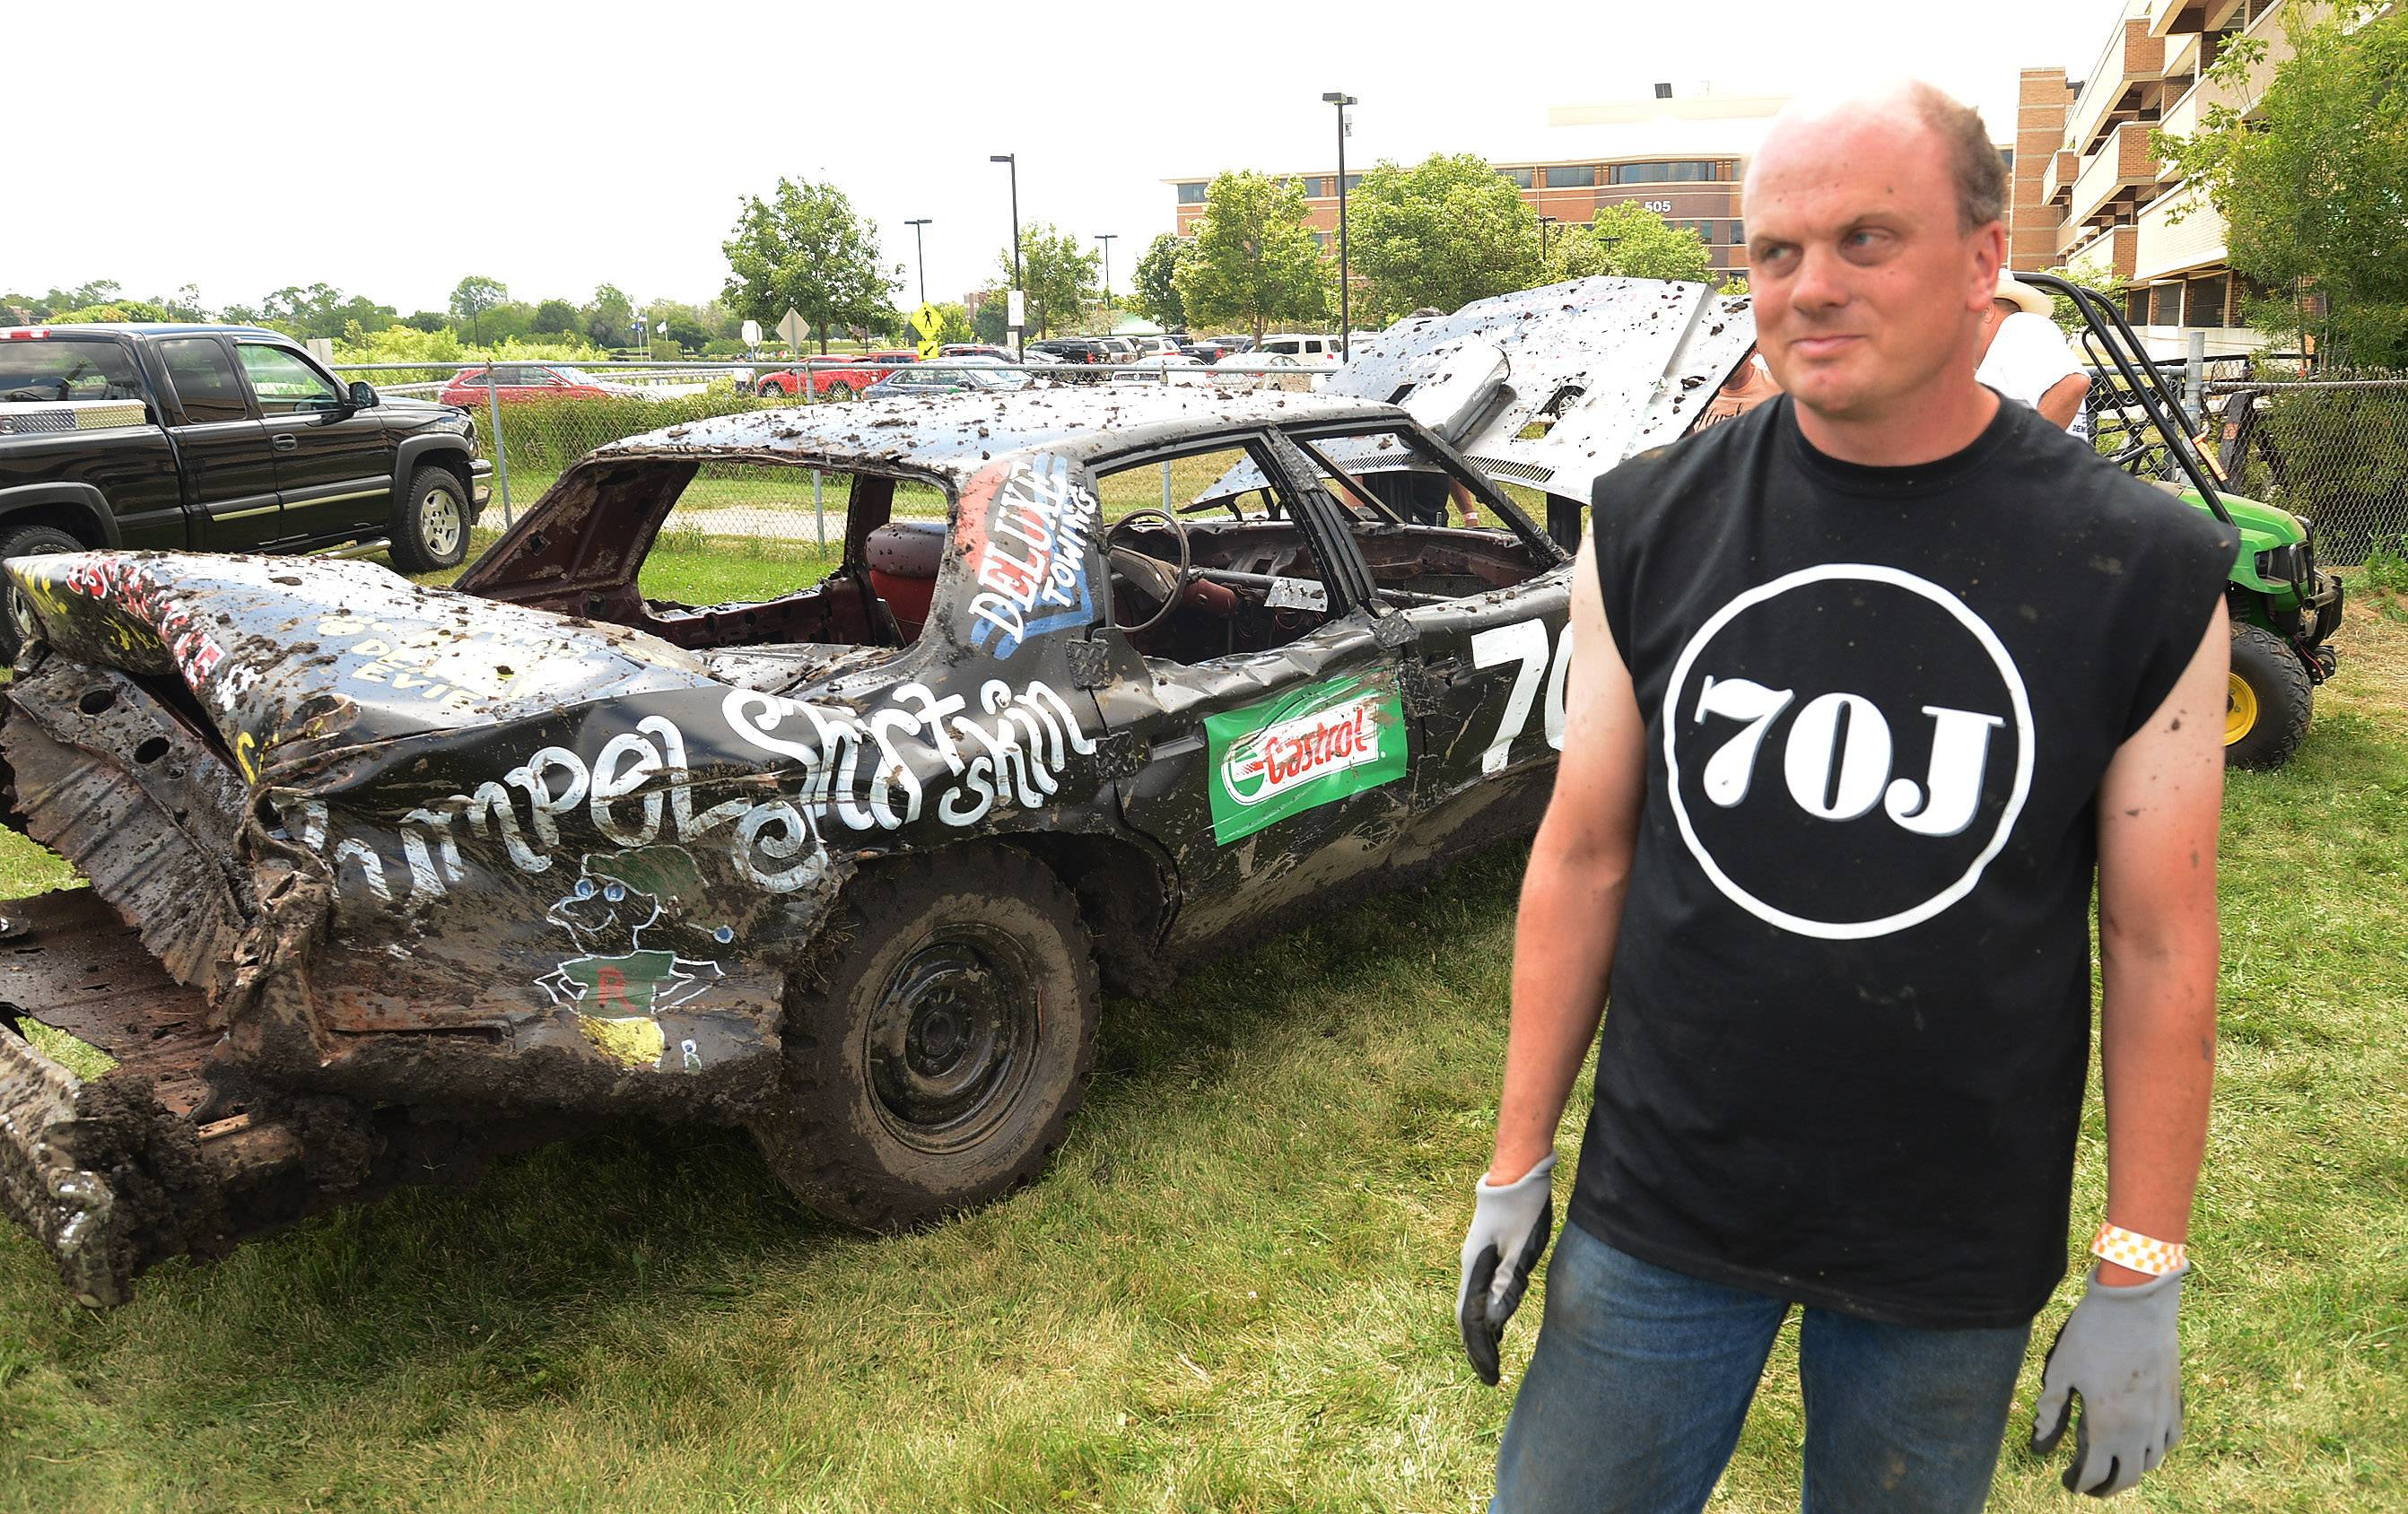 Jay Oppenheim of Wheaton stands alongside his car after qualifying for the final of the demolition derby at the DuPage County Fair. The derby was among the highlights of the fair's final day.